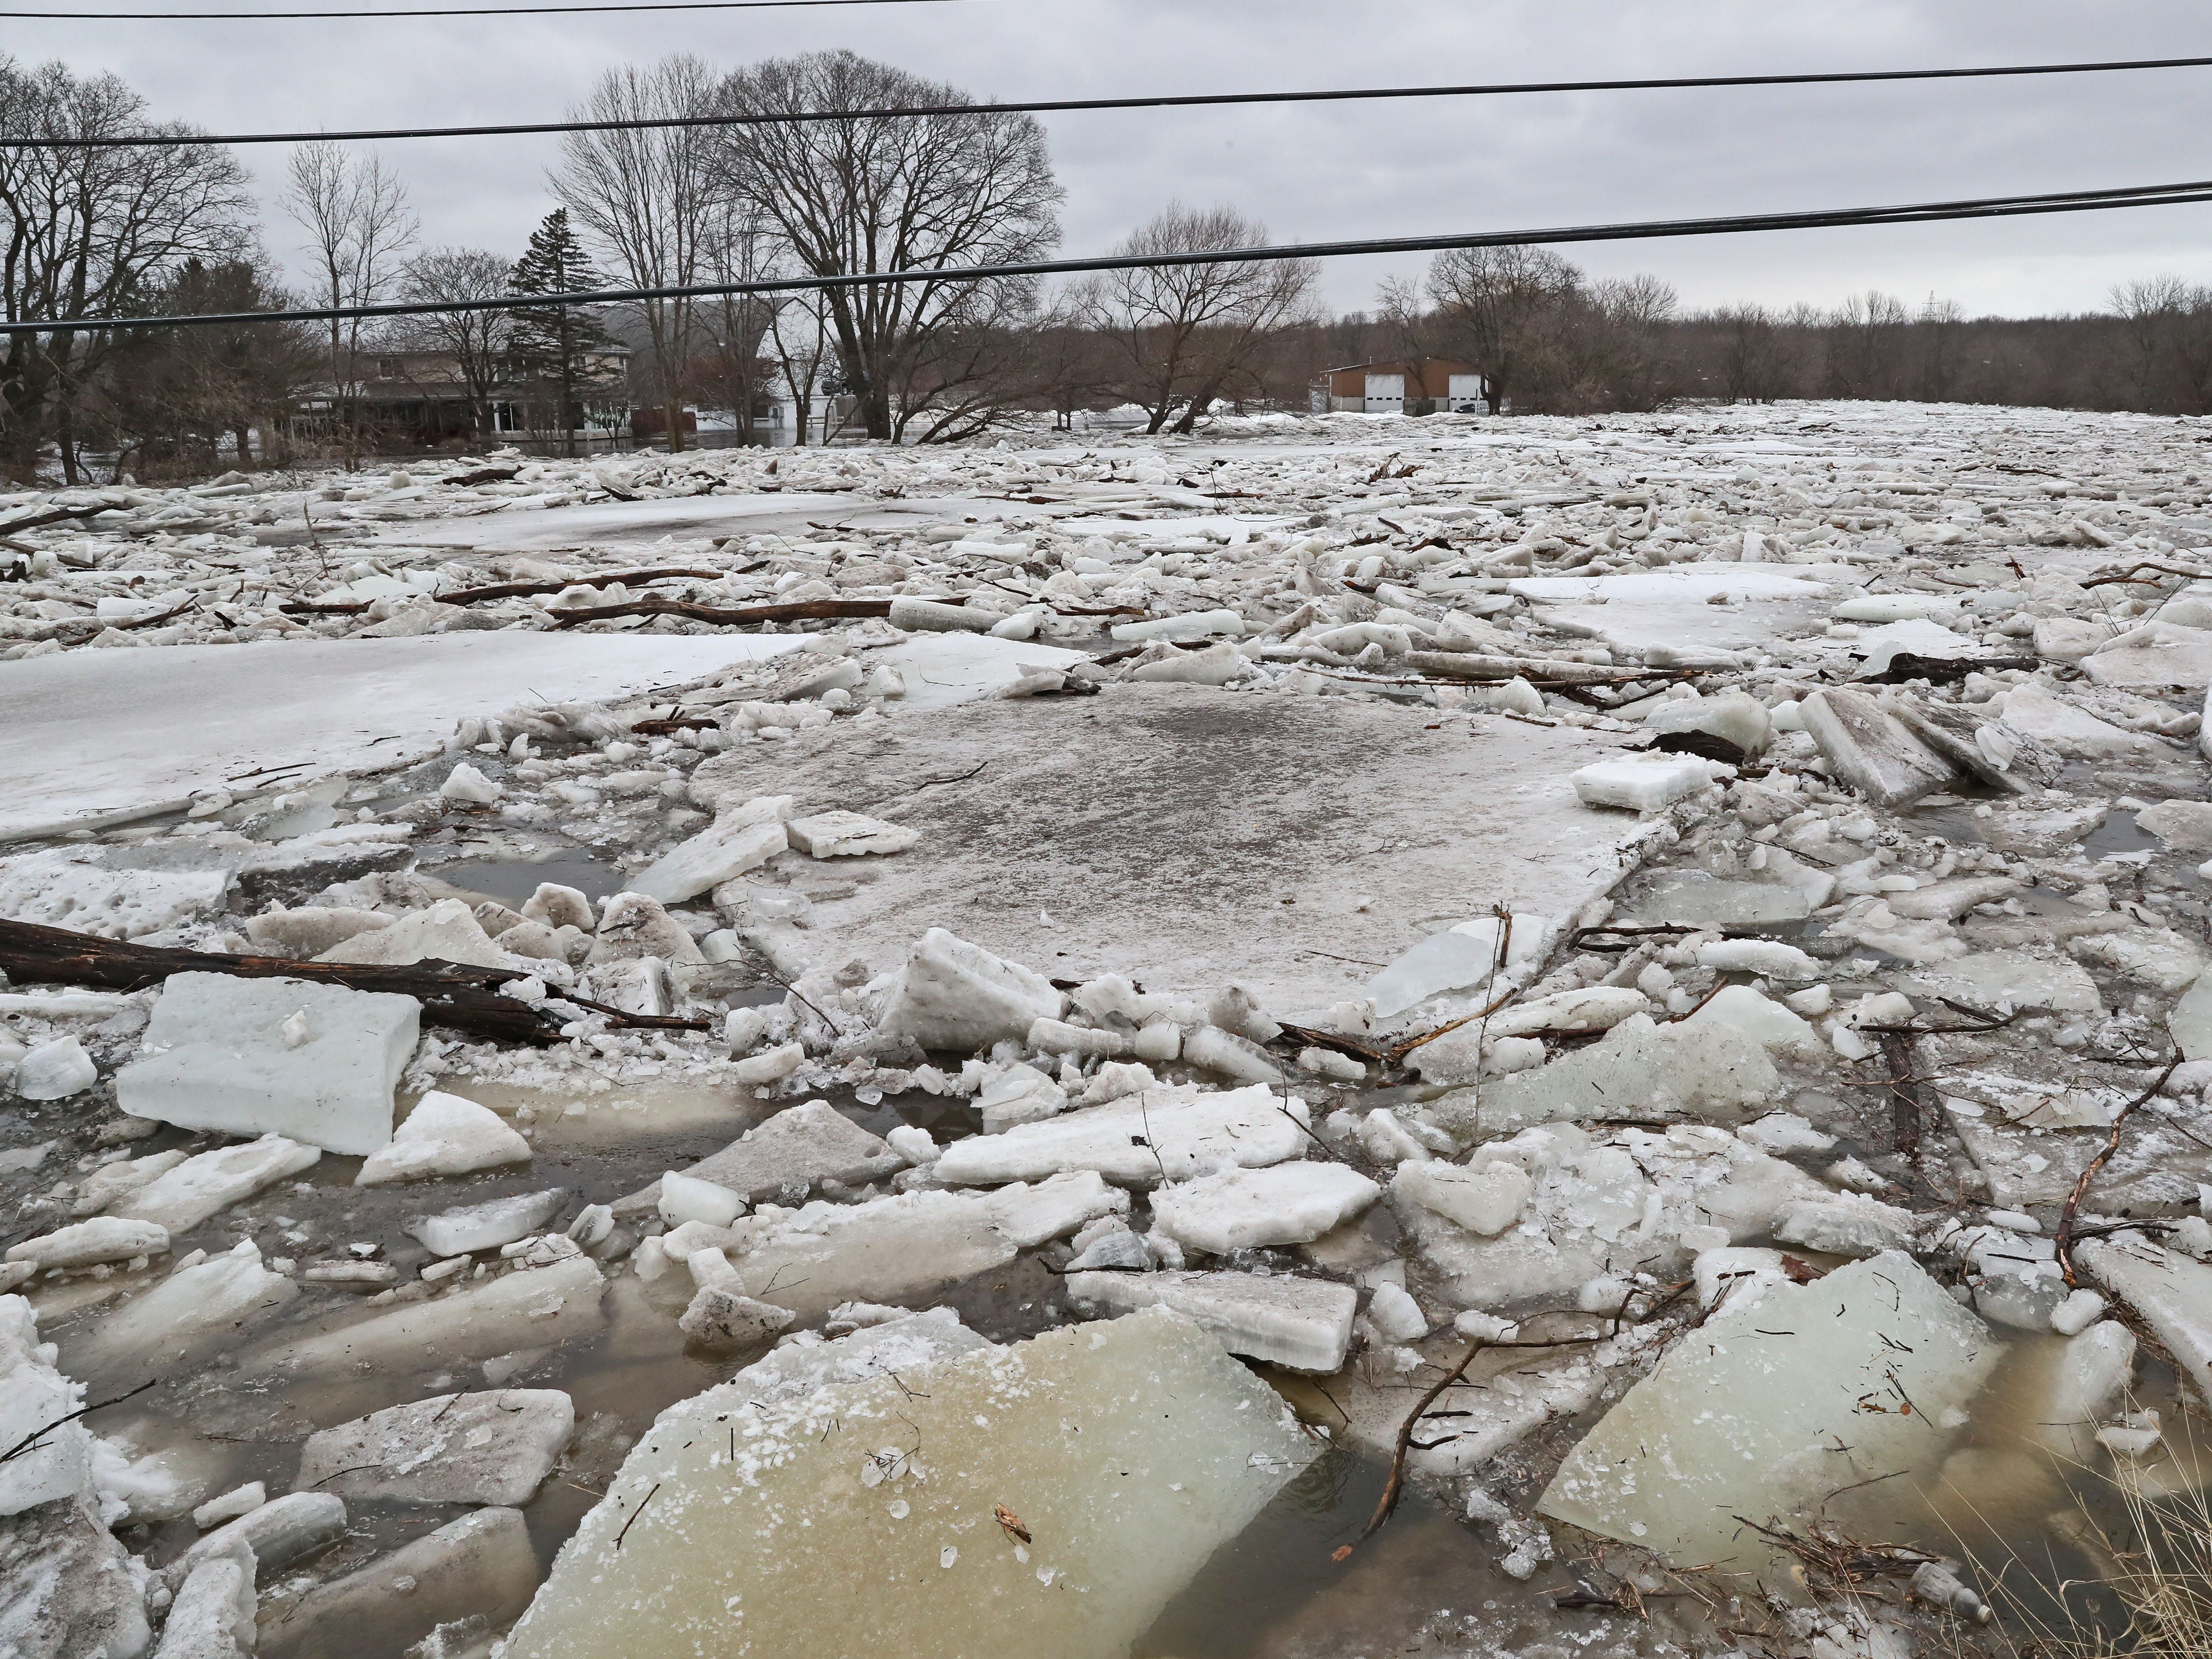 Ice on the Milwaukee River looking north from that location. March 15, 2019 Grafton firefighters rescued two people from the Riverview Kennel on the Milwaukee River at  1584 Pioneer Rd in Cedarburg.  Ice going out on the river was blocked by bridge diverting flow over the Cty Highway C and the surround low areas.